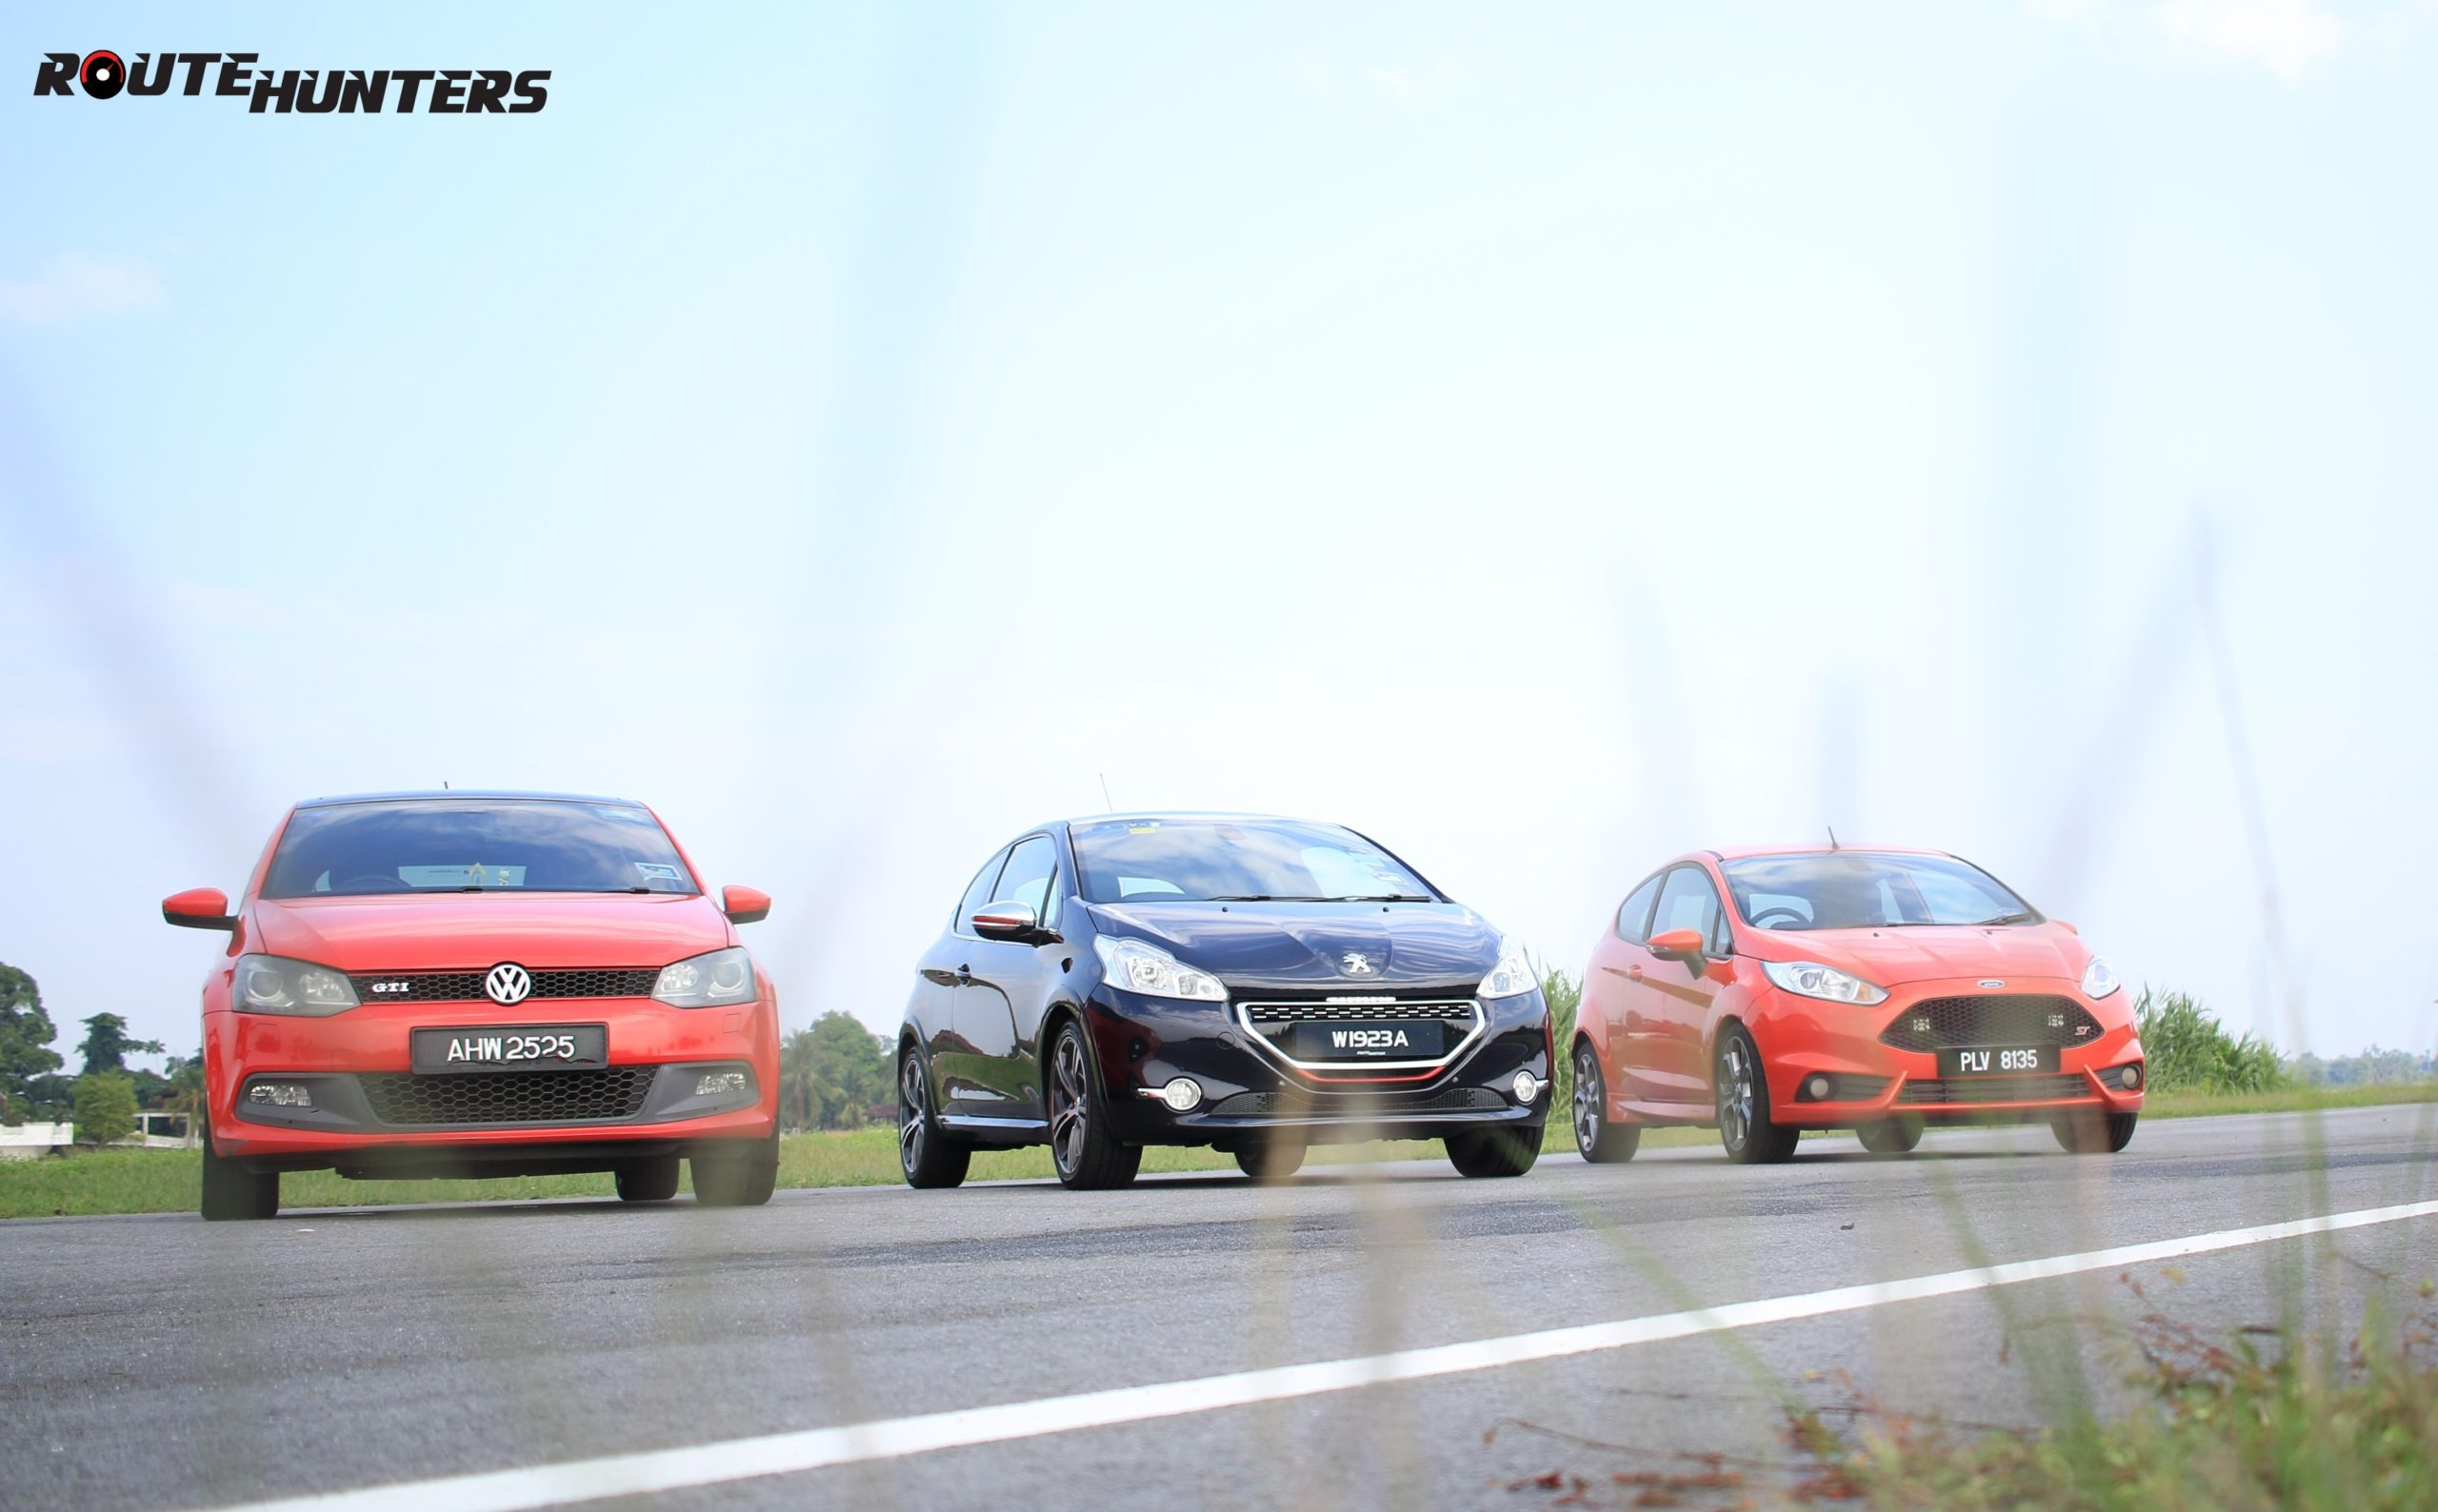 Pre-Loved Hot Hatch buyers guide Part 2: Parts and finance costs